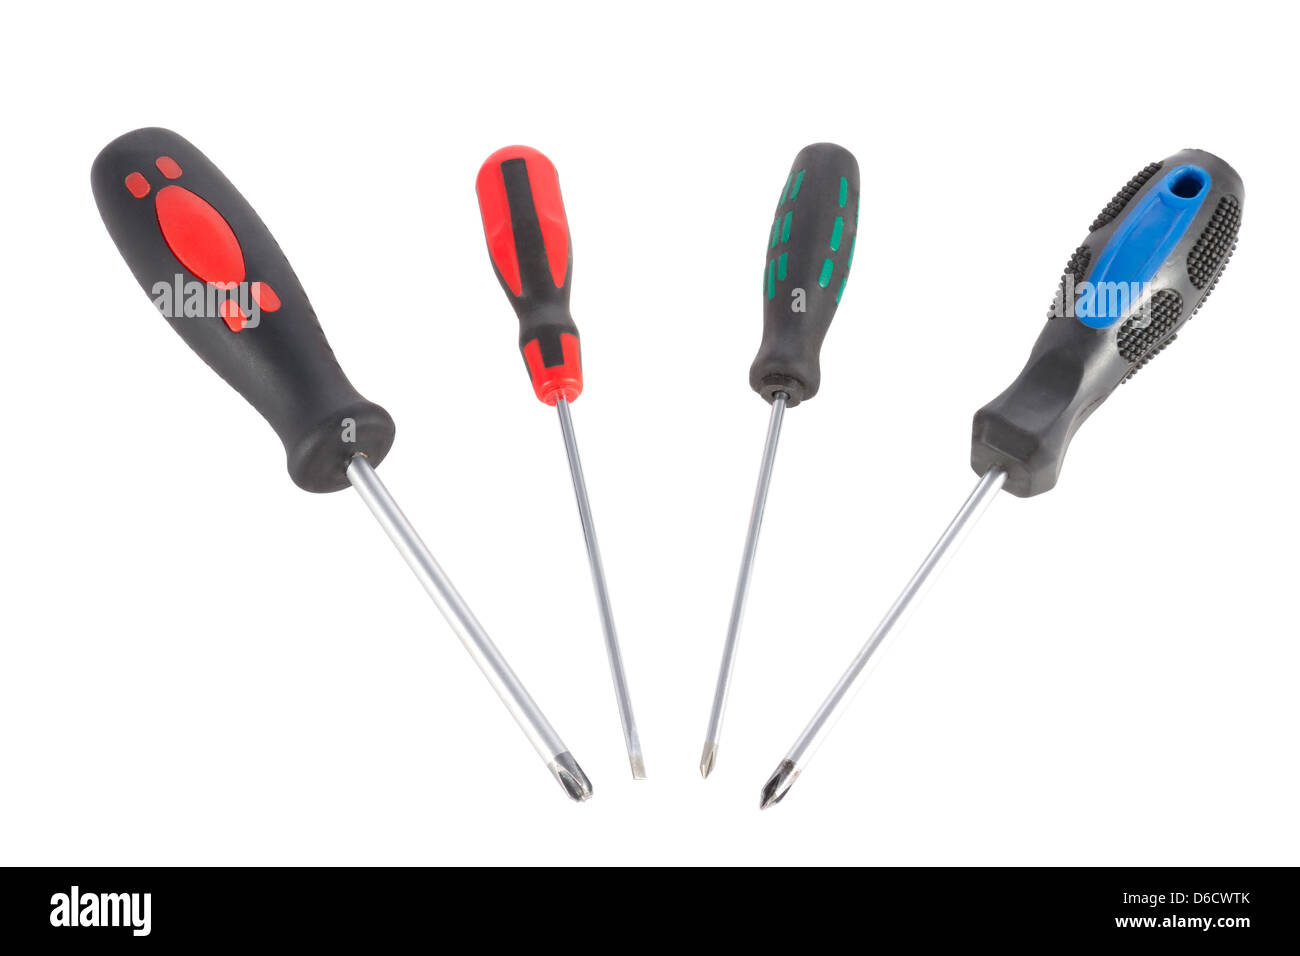 a set of screwdrivers on a white background - Stock Image